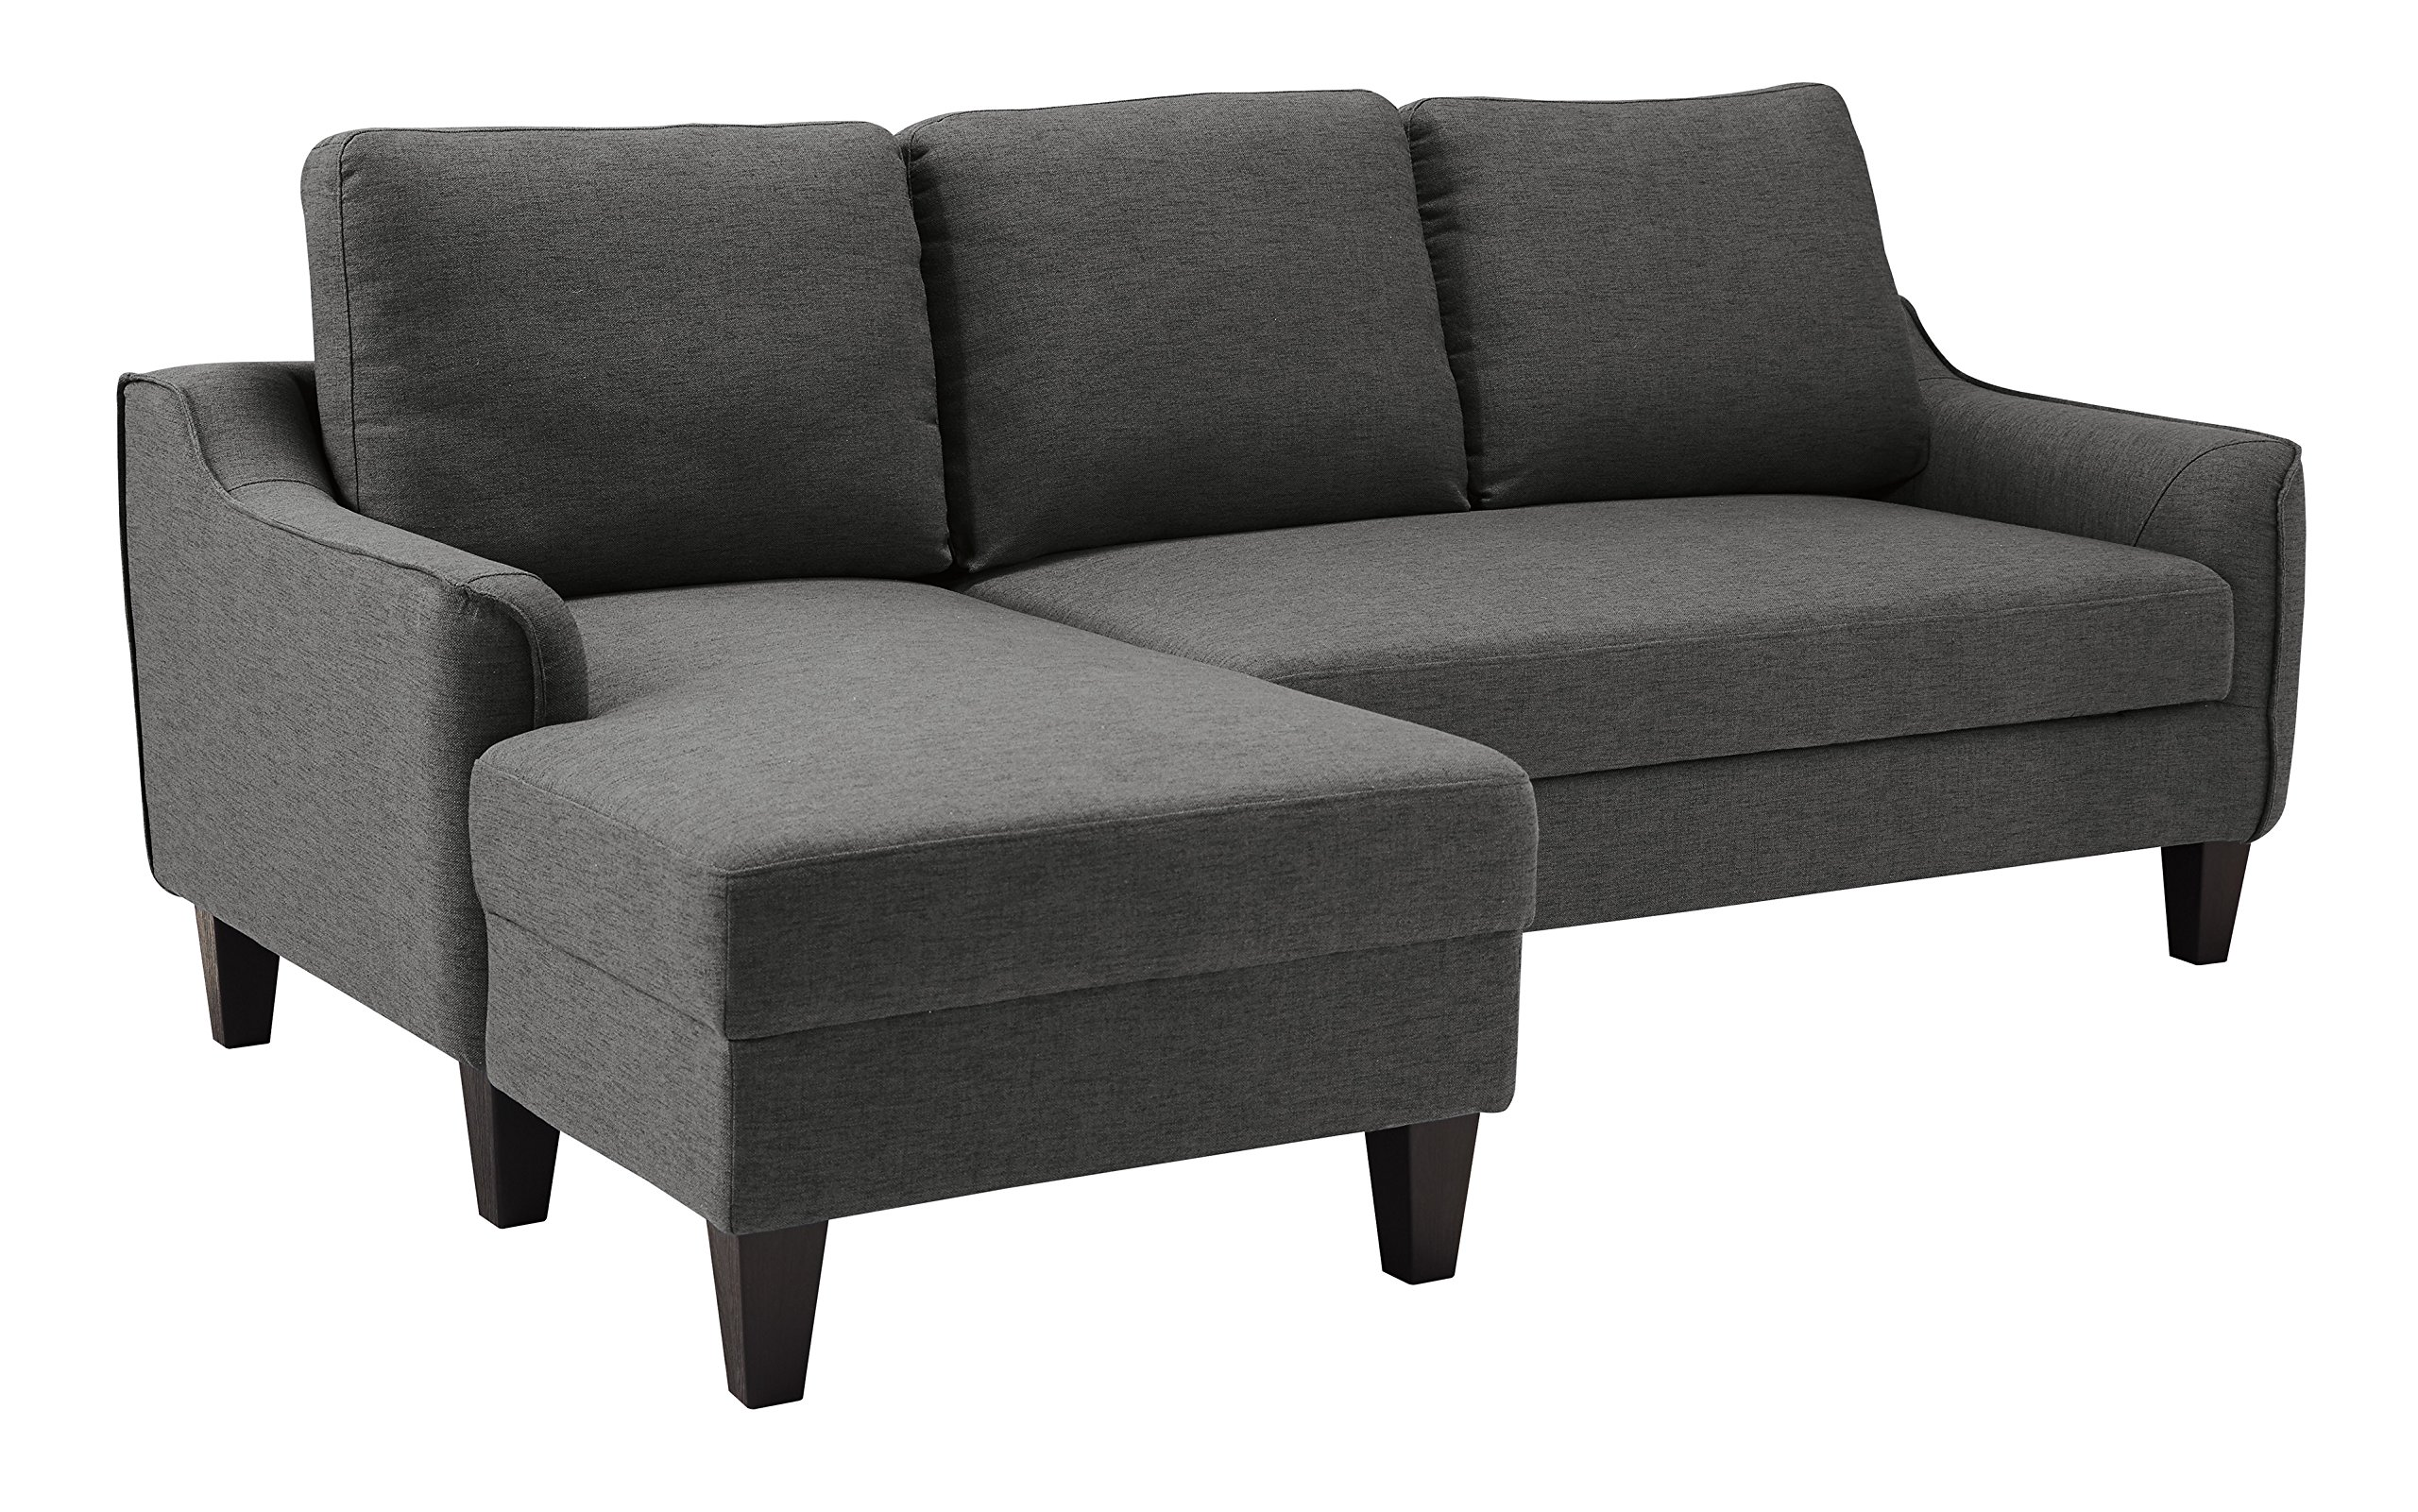 Ashley Furniture Signature Design - Jarreau Contemporary Upholstered Sofa Chaise Sleeper - Gray by Signature Design by Ashley